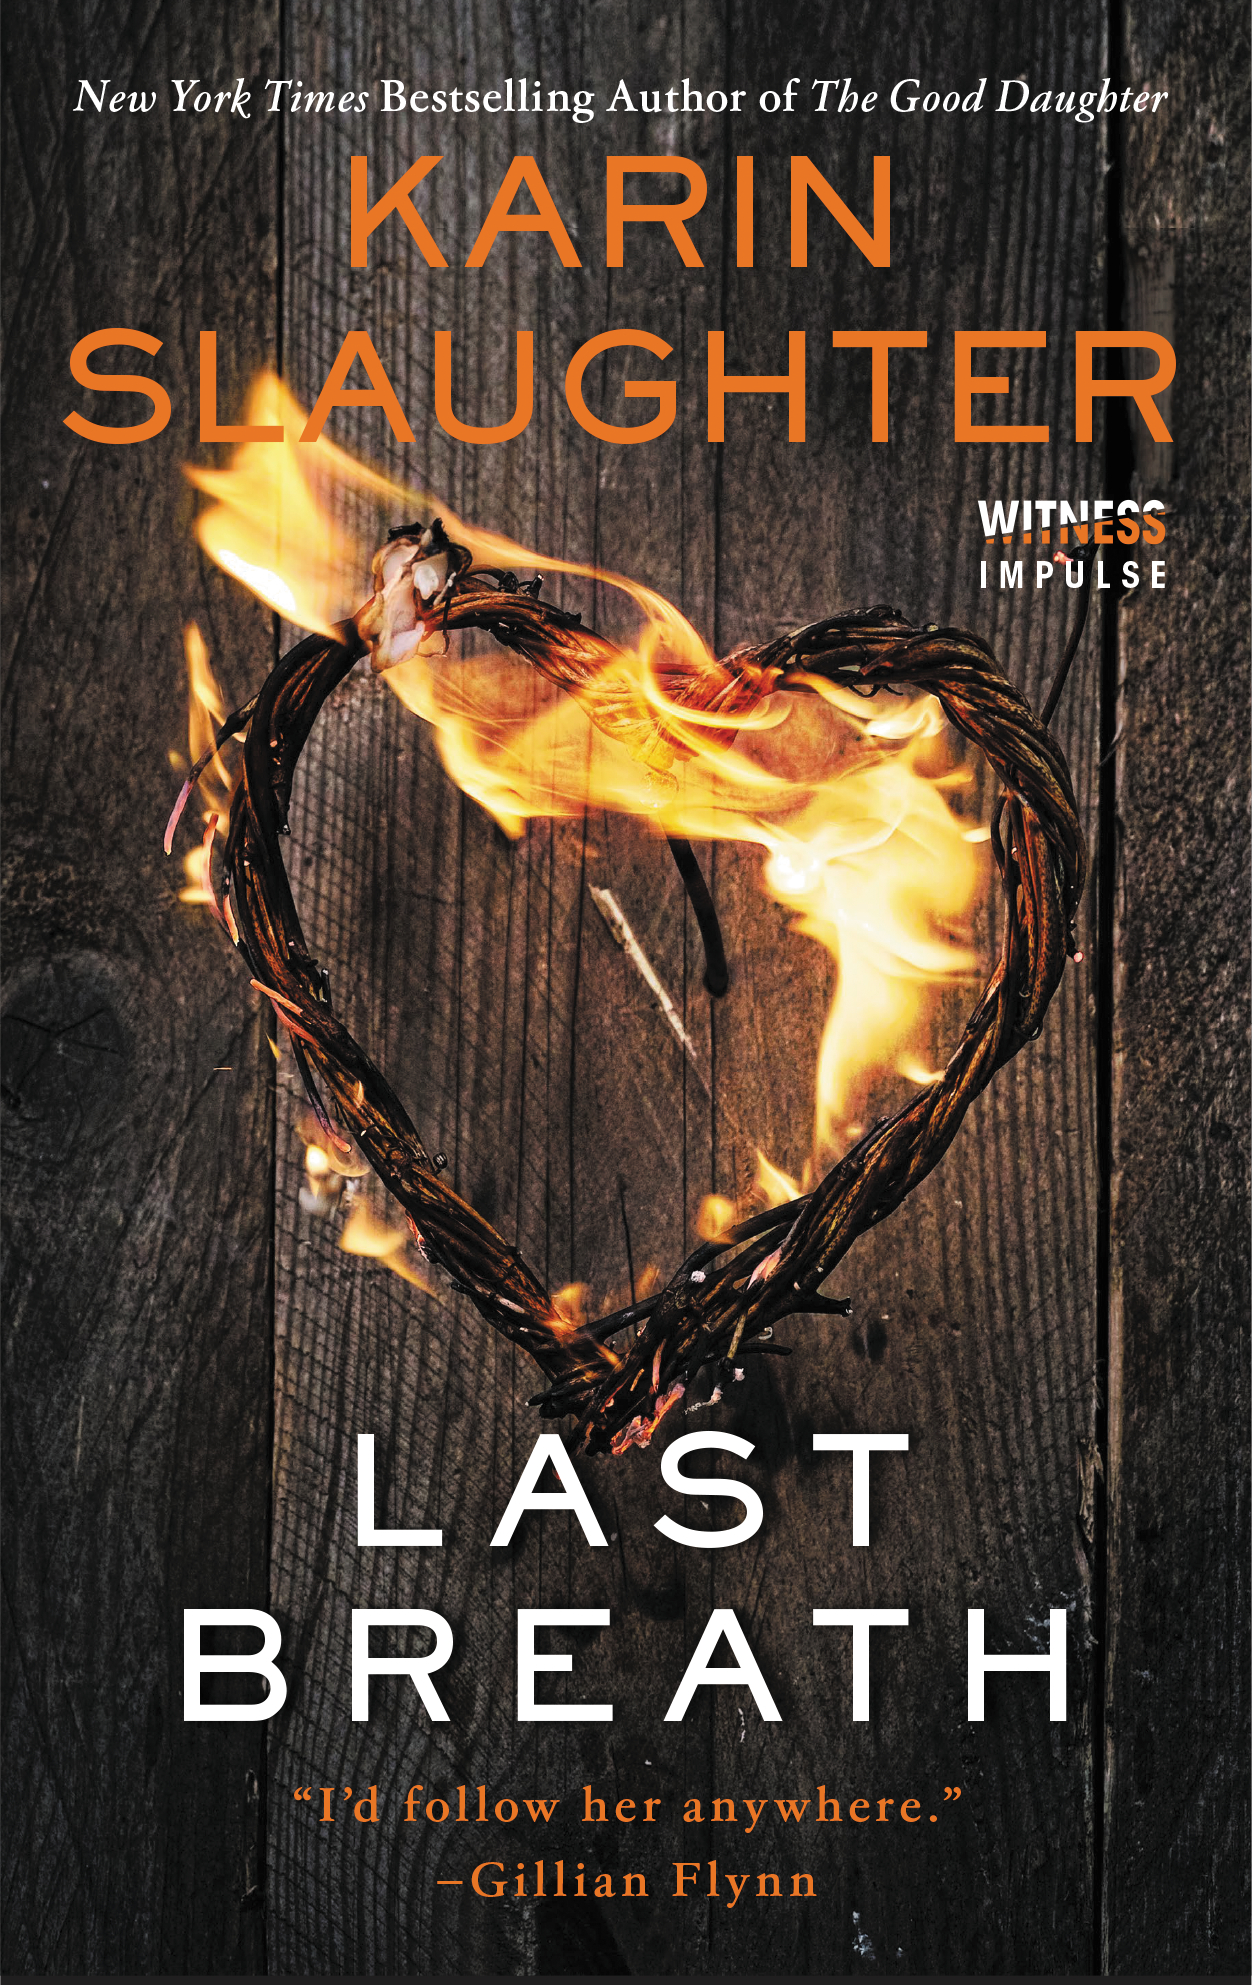 Last Breath by Karin Slaughter